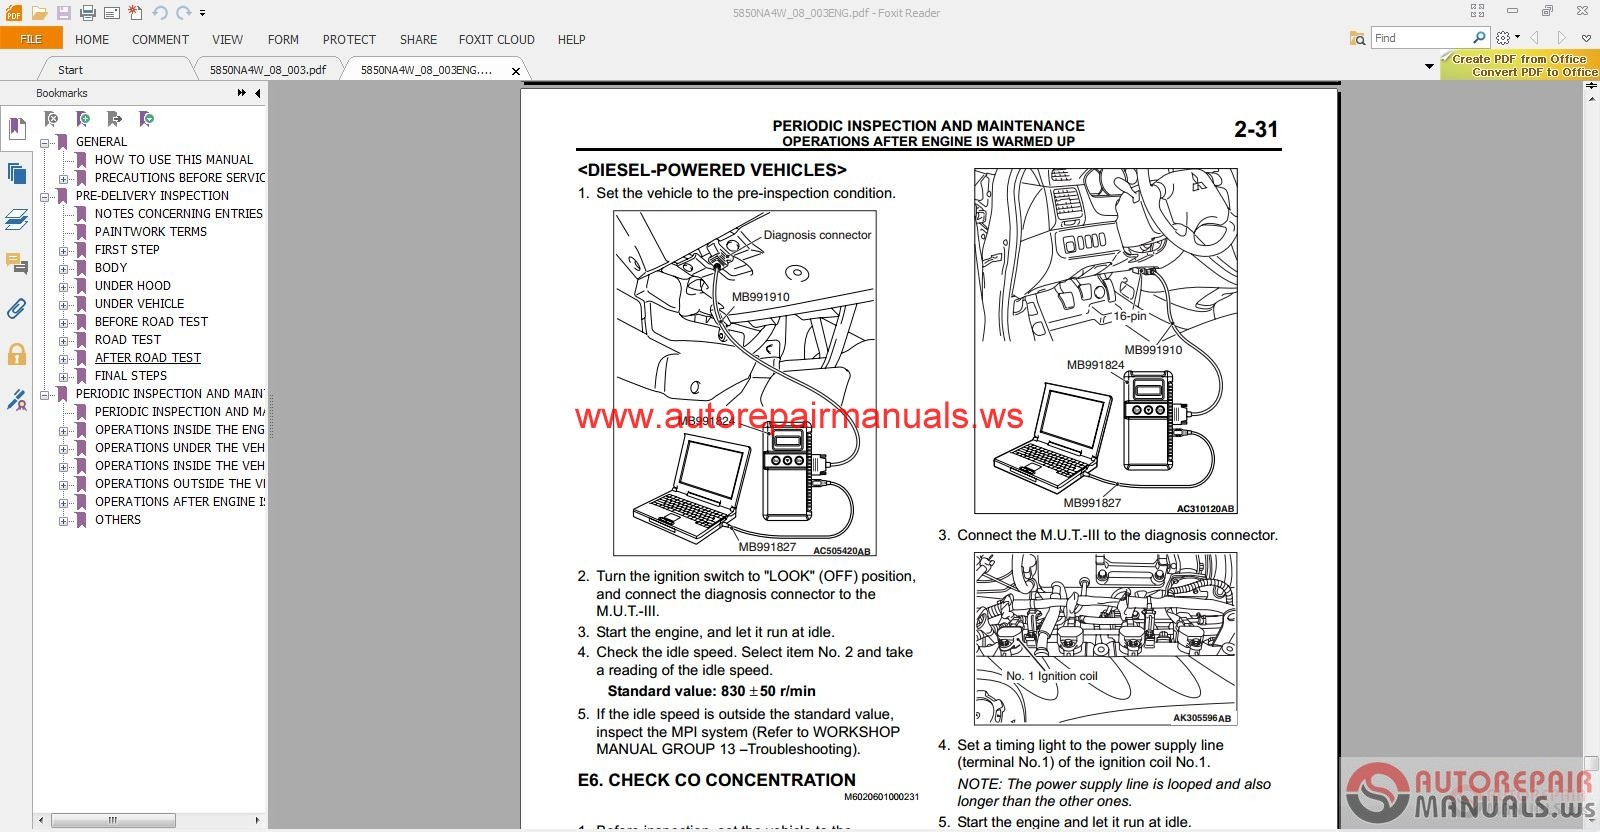 Acura Ecu Wiring Diagram Acura Free Engine Image For